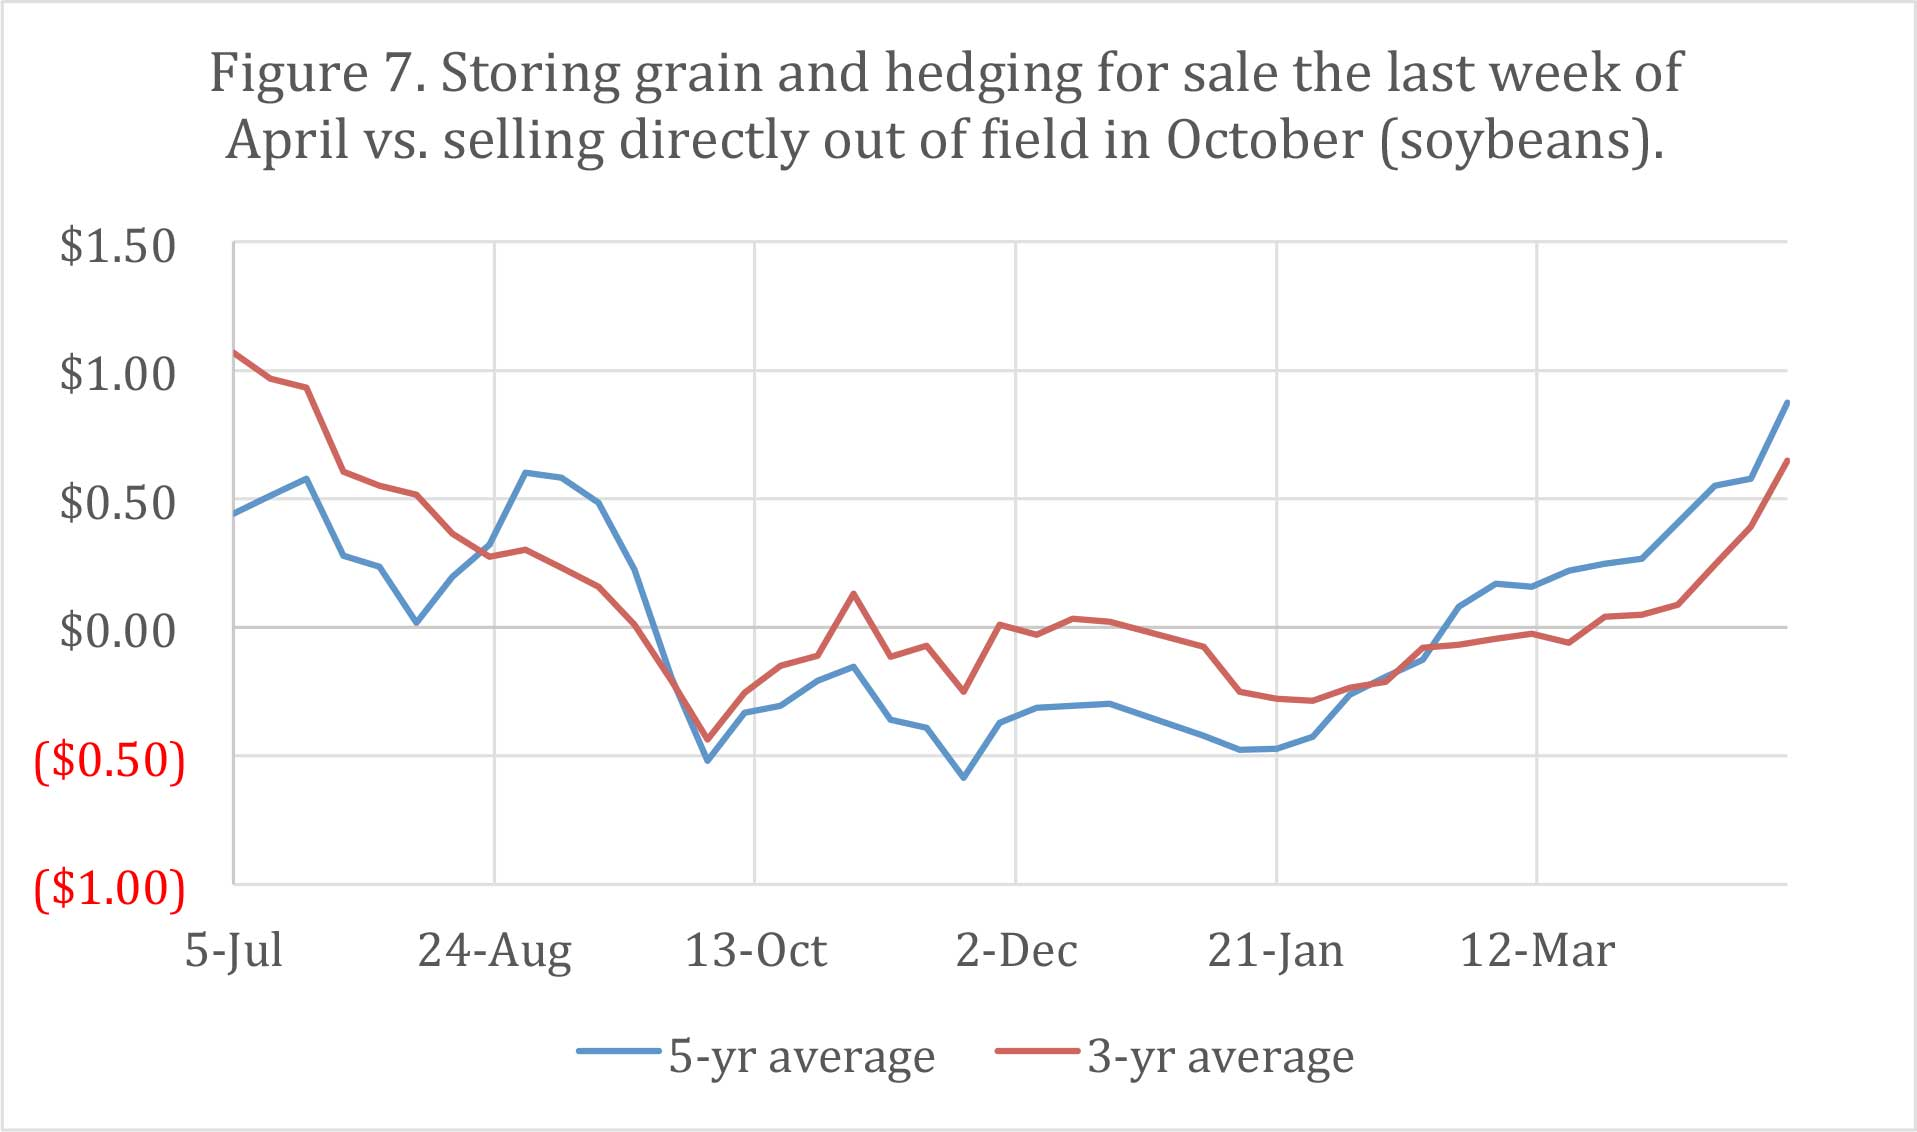 Figure 7. Storing grain and hedging for sale the last week of April vs. selling directly out of field in October (soybeans).